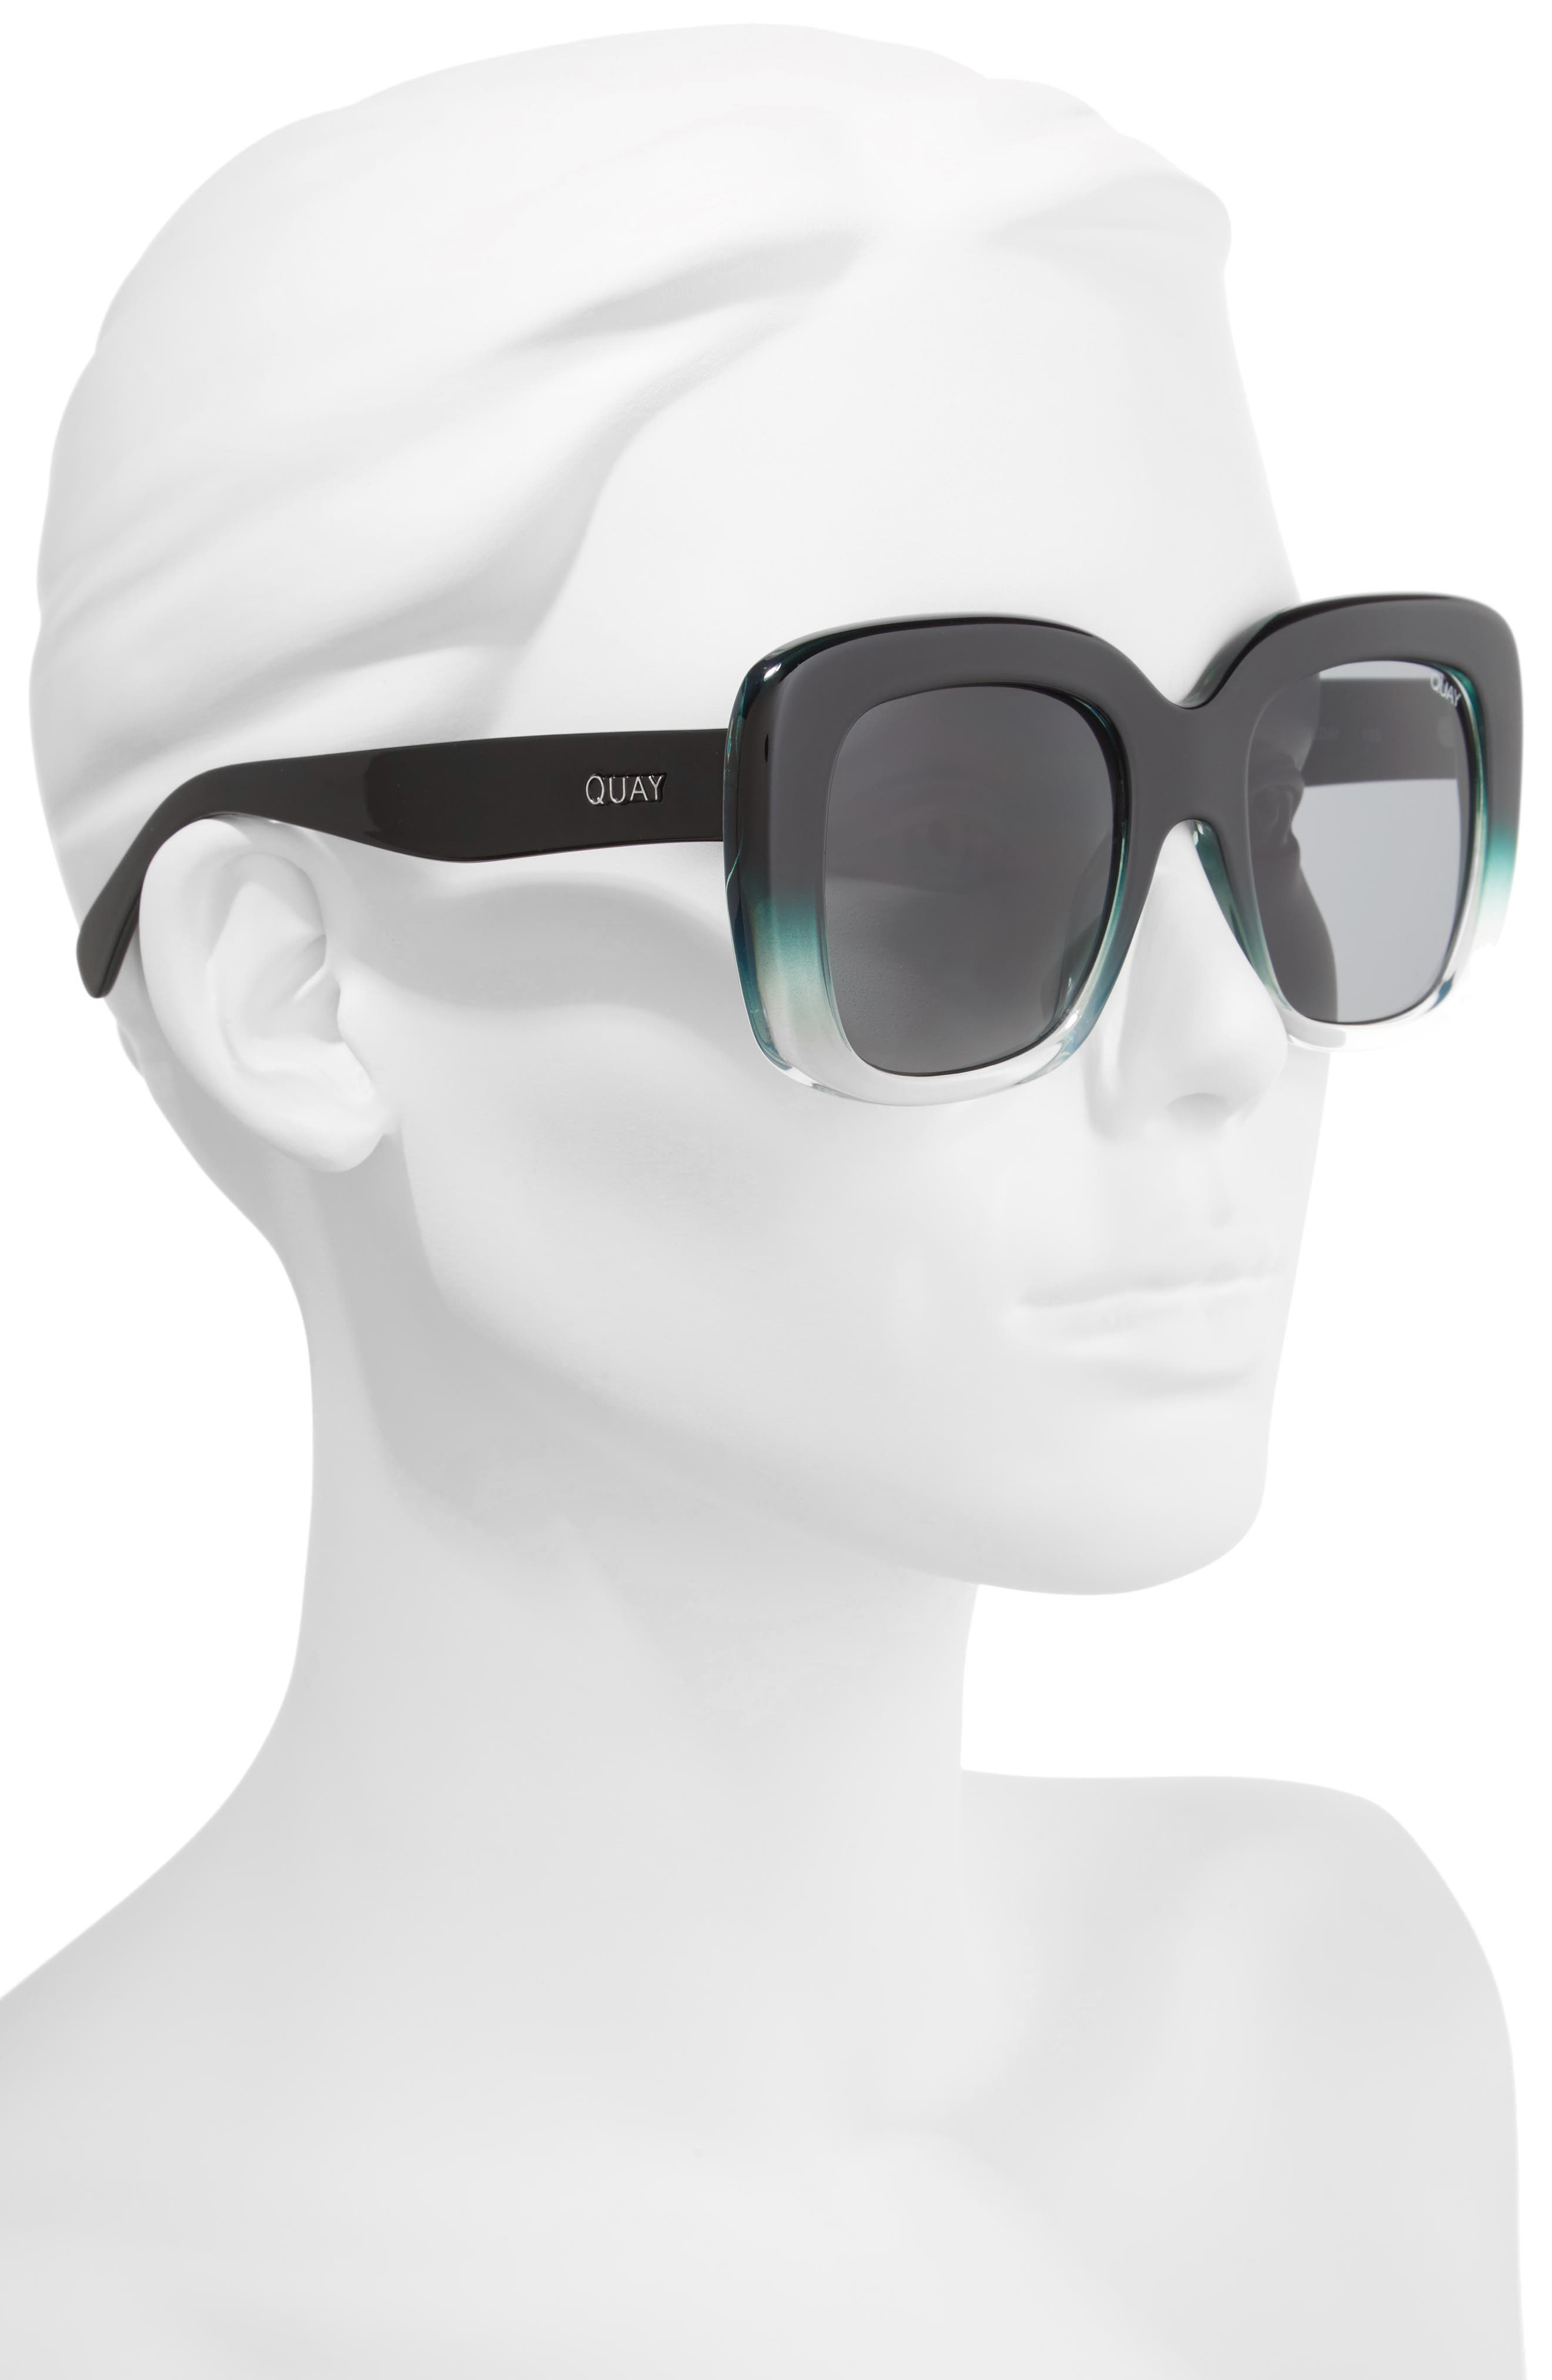 Day After Day 53mm Square Sunglasses,                             Alternate thumbnail 2, color,                             Black/ Green Smoke